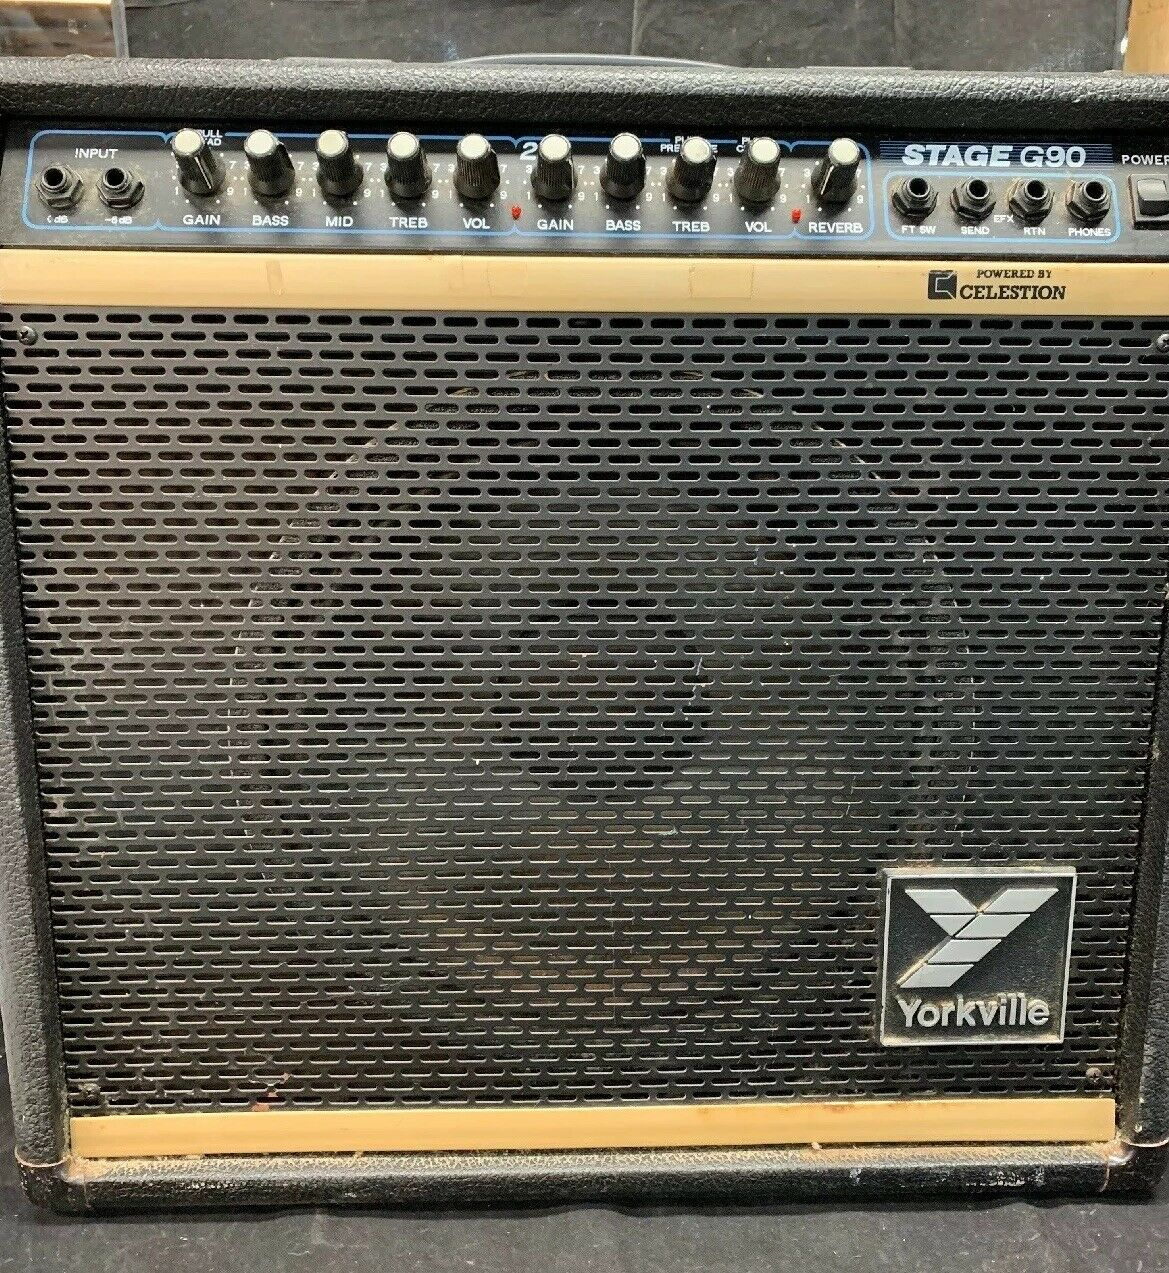 Yorkville Stage G90 Guitar Amplifier Pre-Owned Works